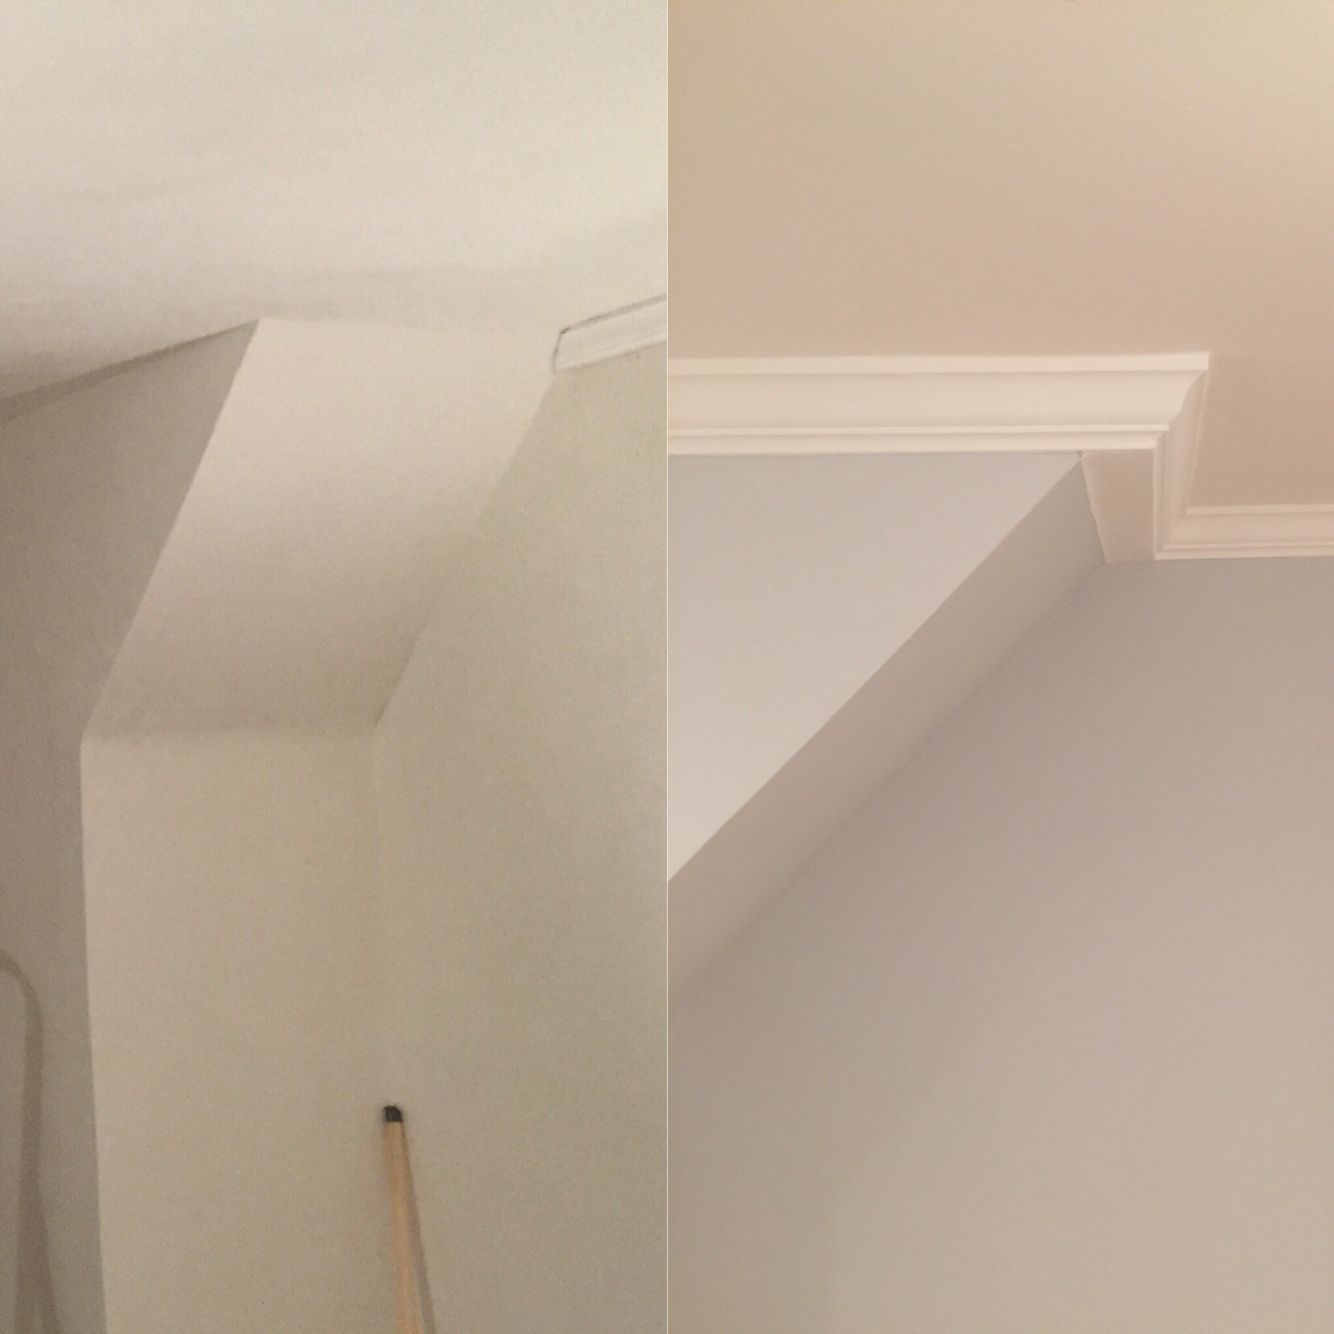 Alternative to crown molding - Before And After Crown Molding Project With Angled Walls